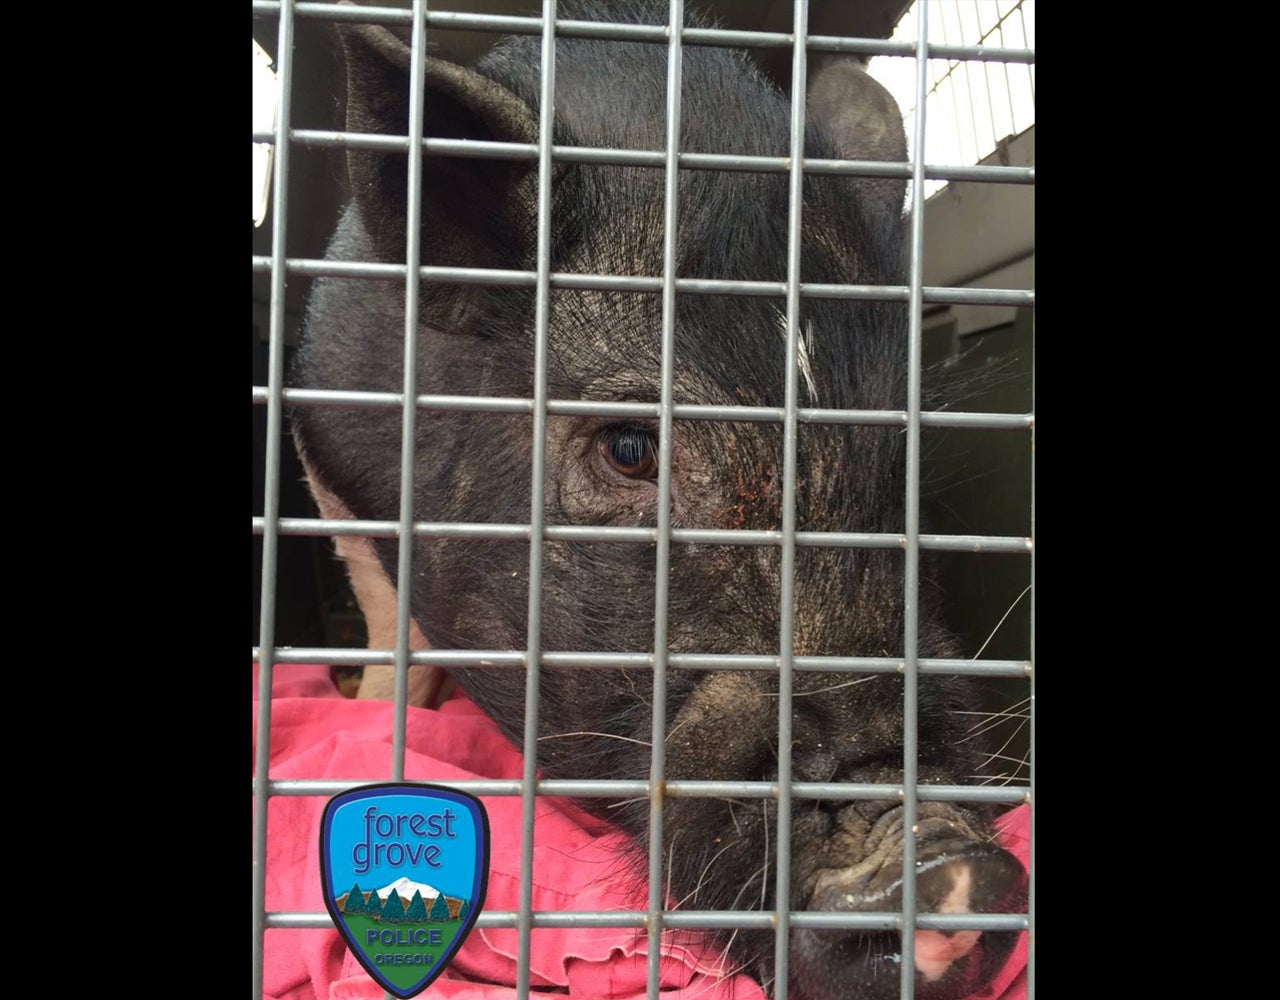 Cops Nab Notorious Hog Outlaw 'Piggy Smalls' After Months On The Run